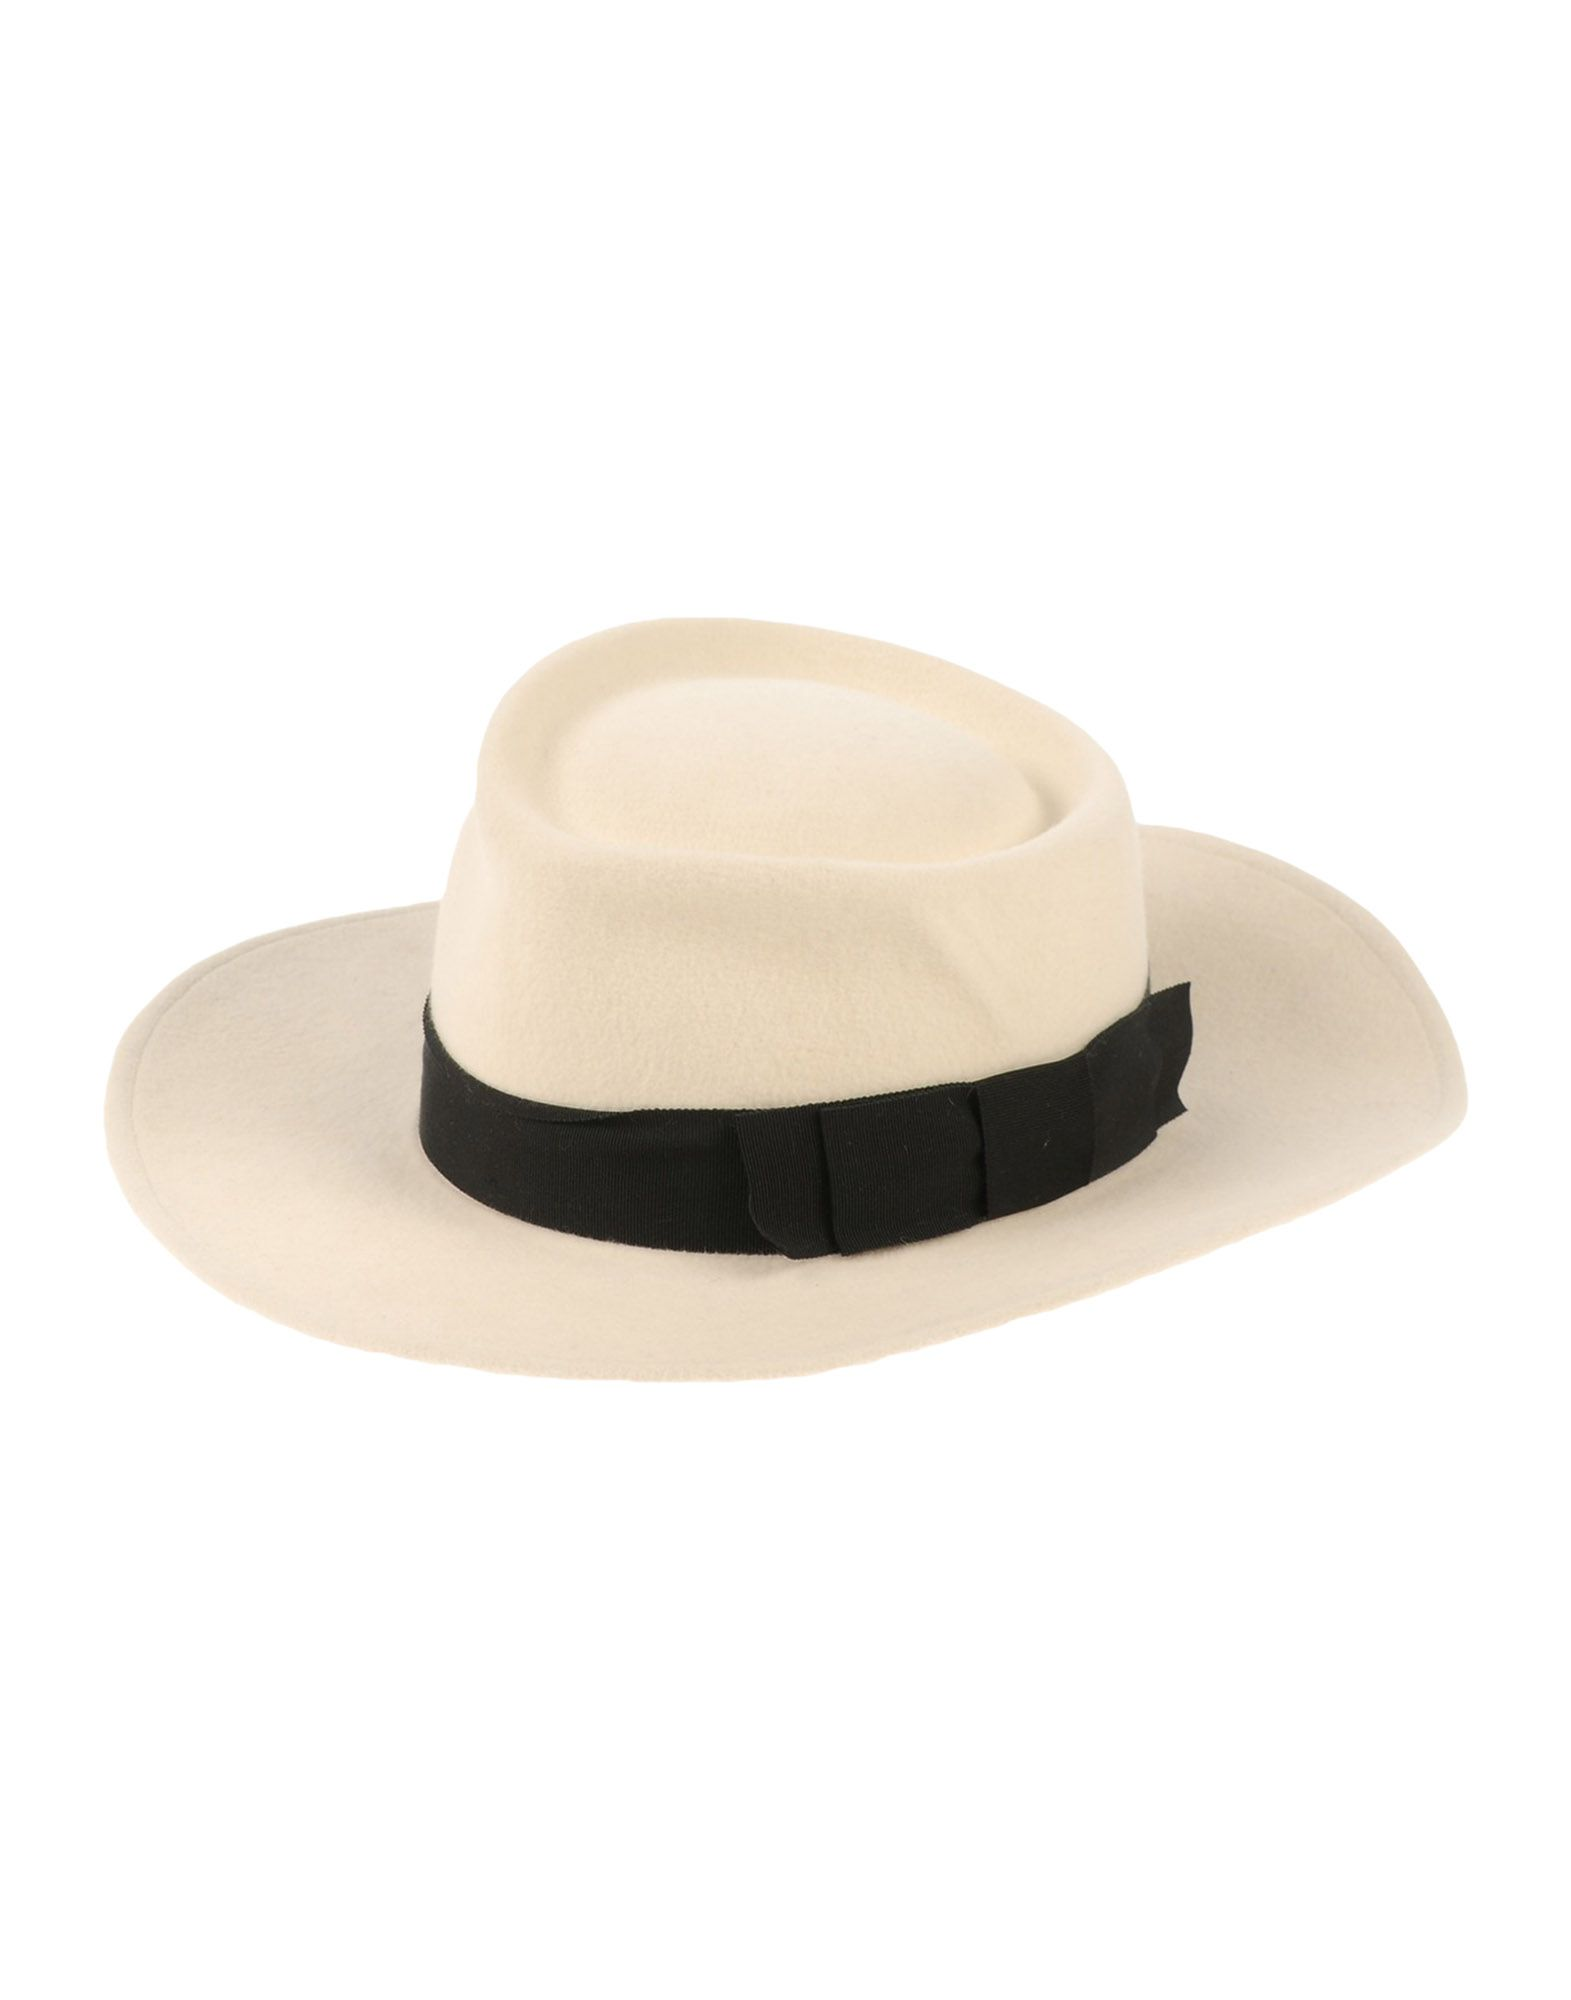 GLADYS TAMEZ Hat in White